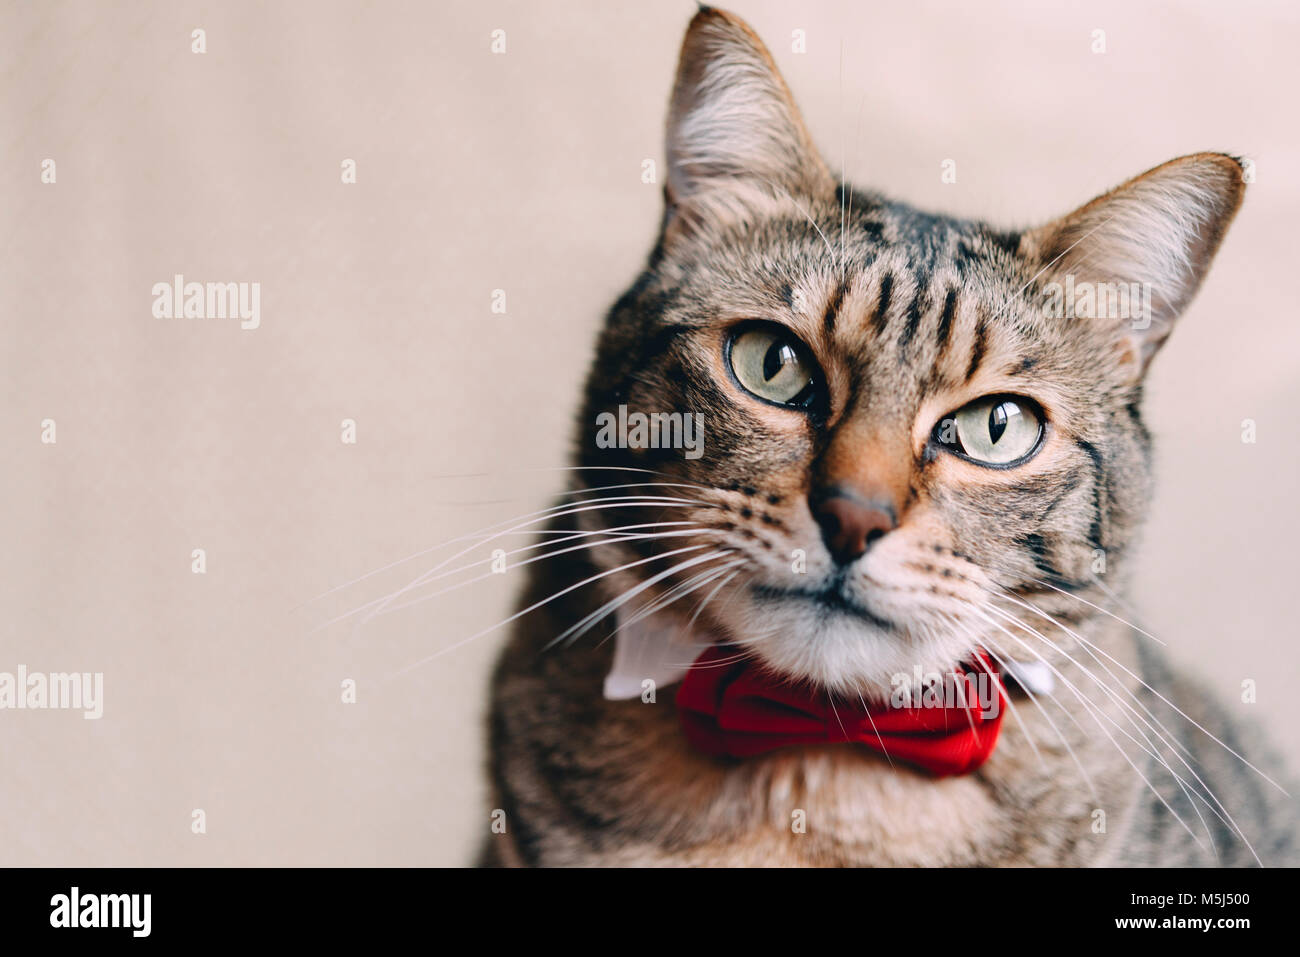 Portrait of tabby cat with collar and red bow tie - Stock Image